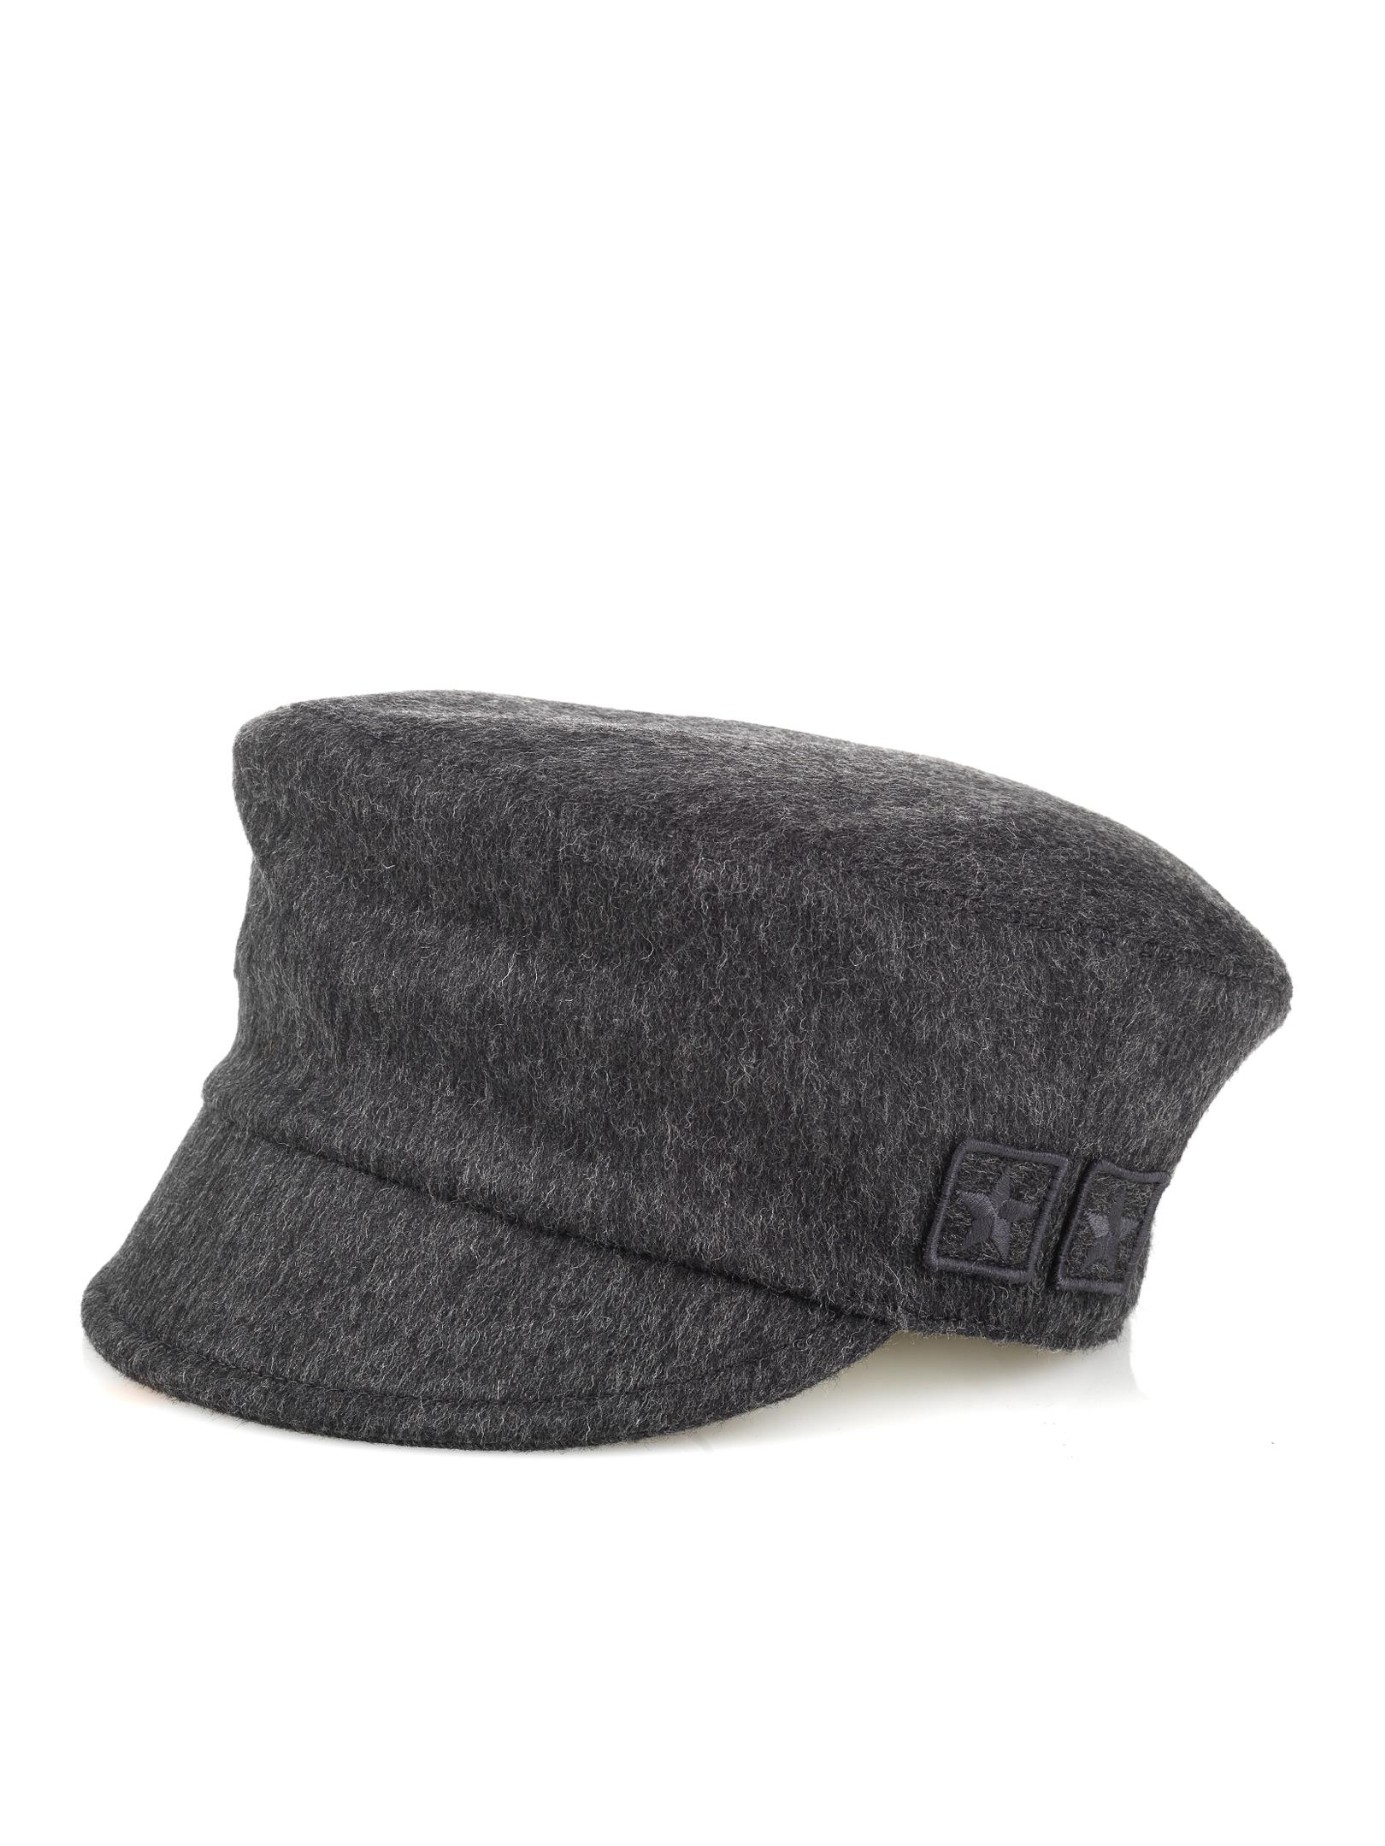 Lyst - Gucci Military Patches Wool Cap in Gray for Men eb8a86be92b